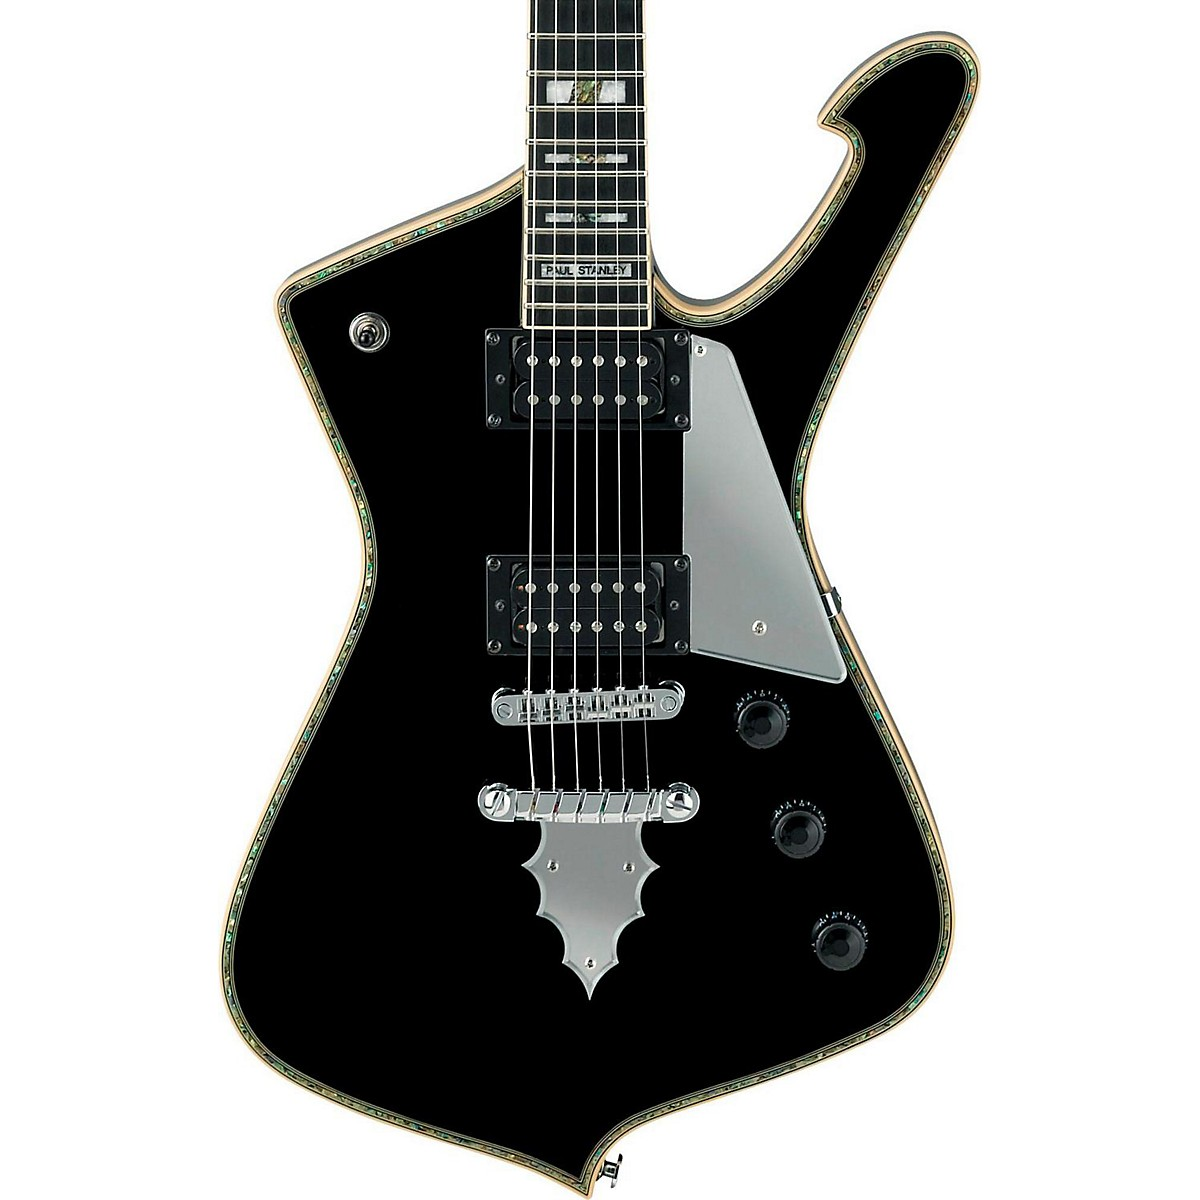 Ibanez PS Series PS120 Paul Stanley Signature Electric Guitar